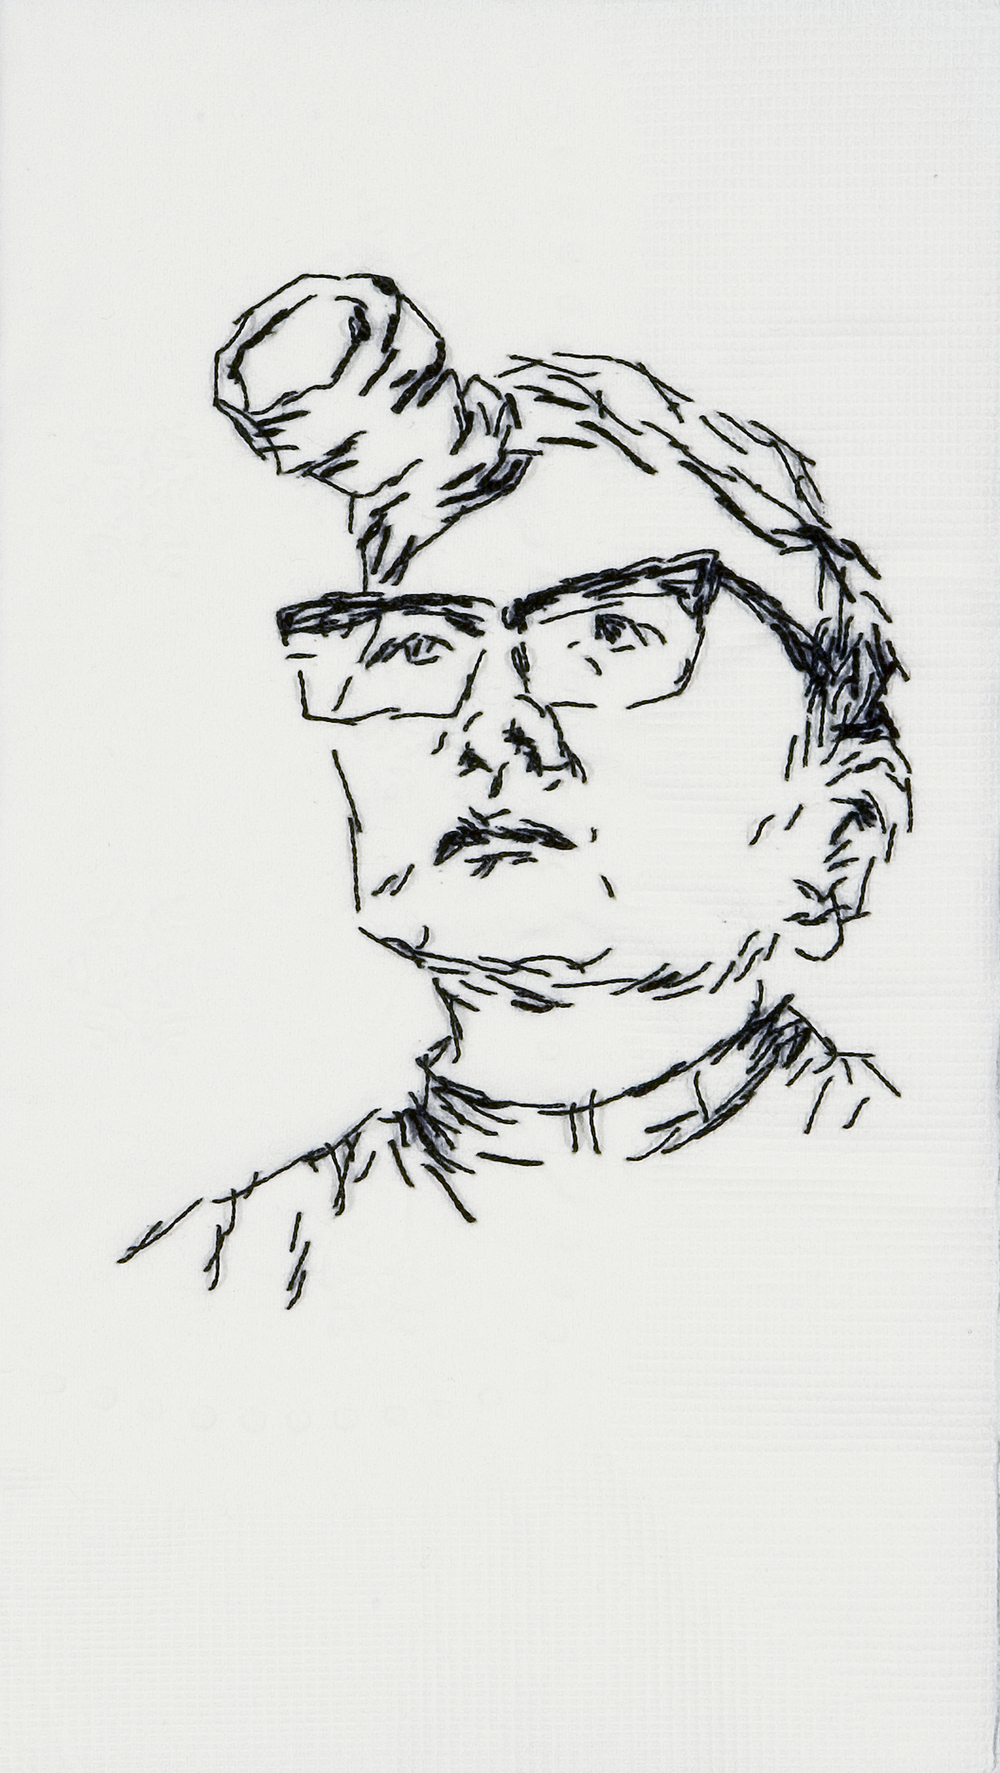 "Tina  Black thread on paper napkin, 7"" x 4"", 2008"